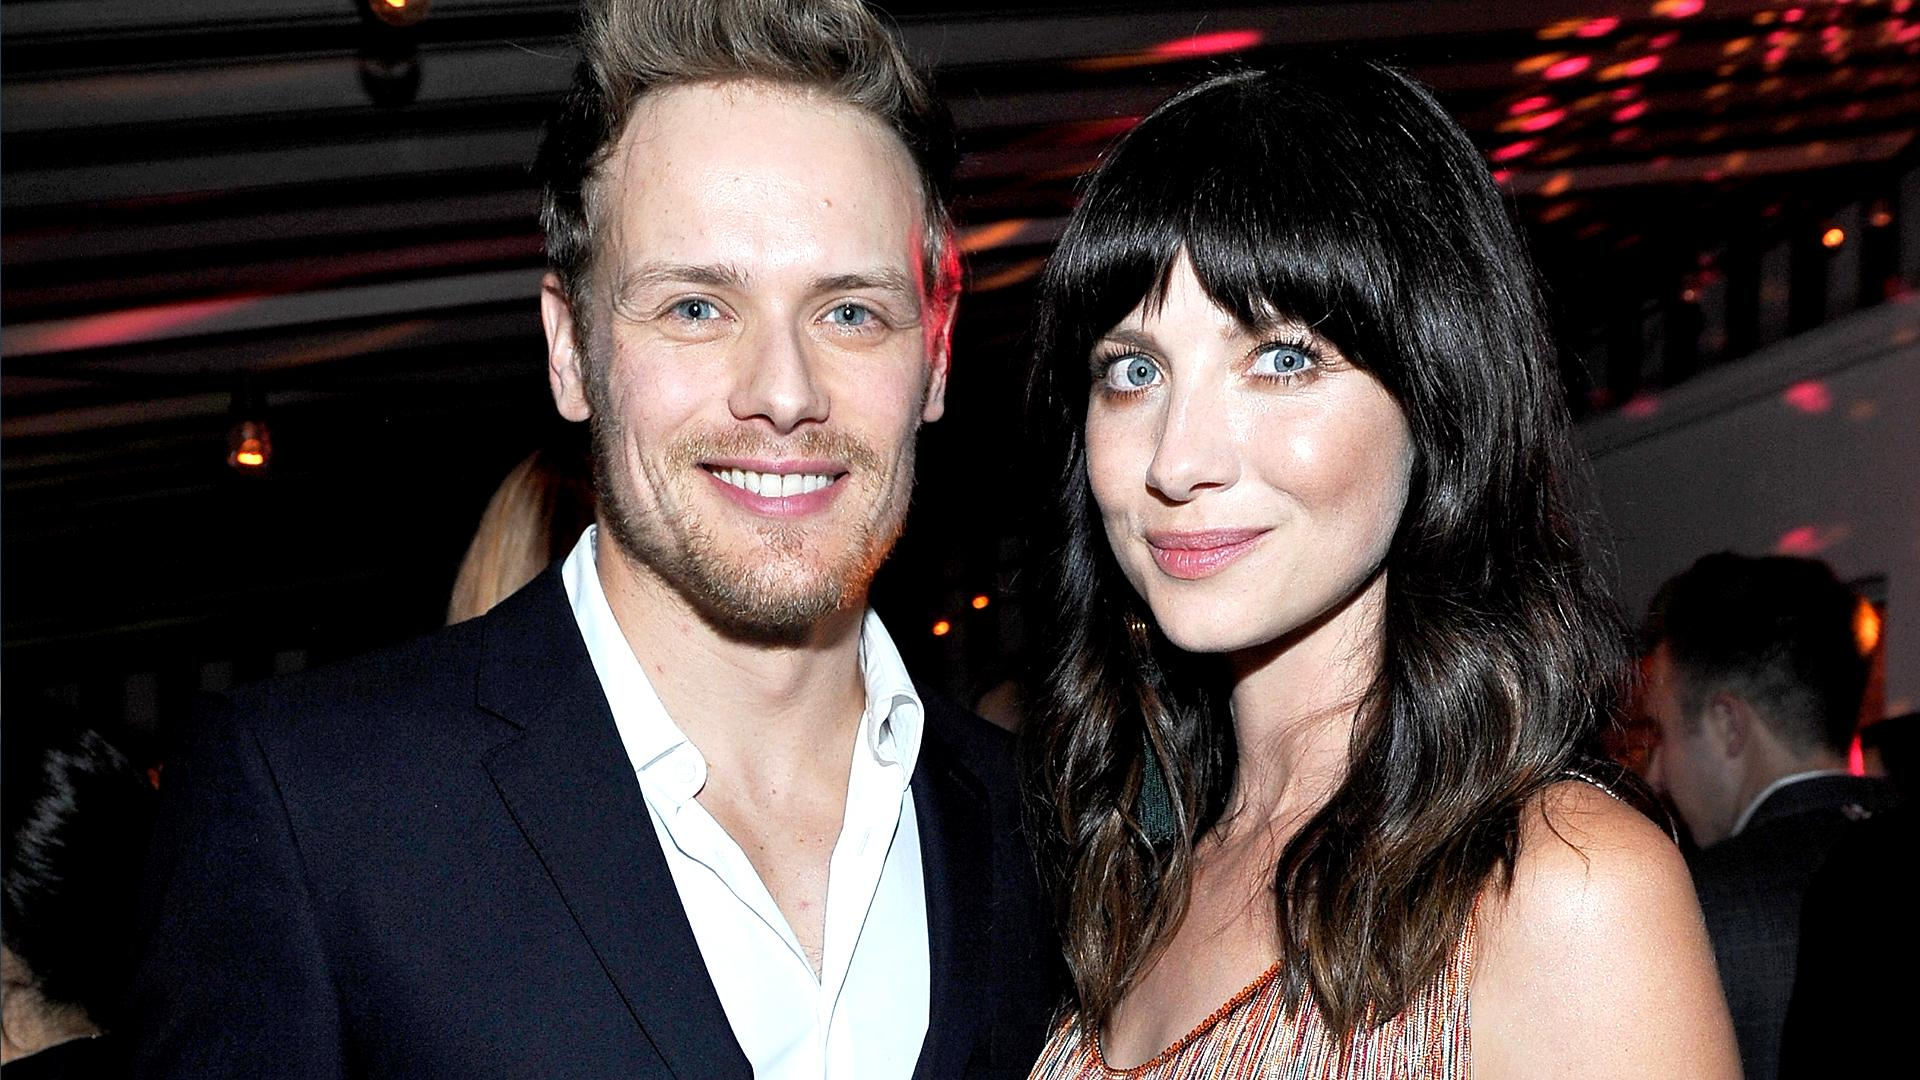 Outlander' Stars Sam Heughan and Caitriona Balfe Party Together